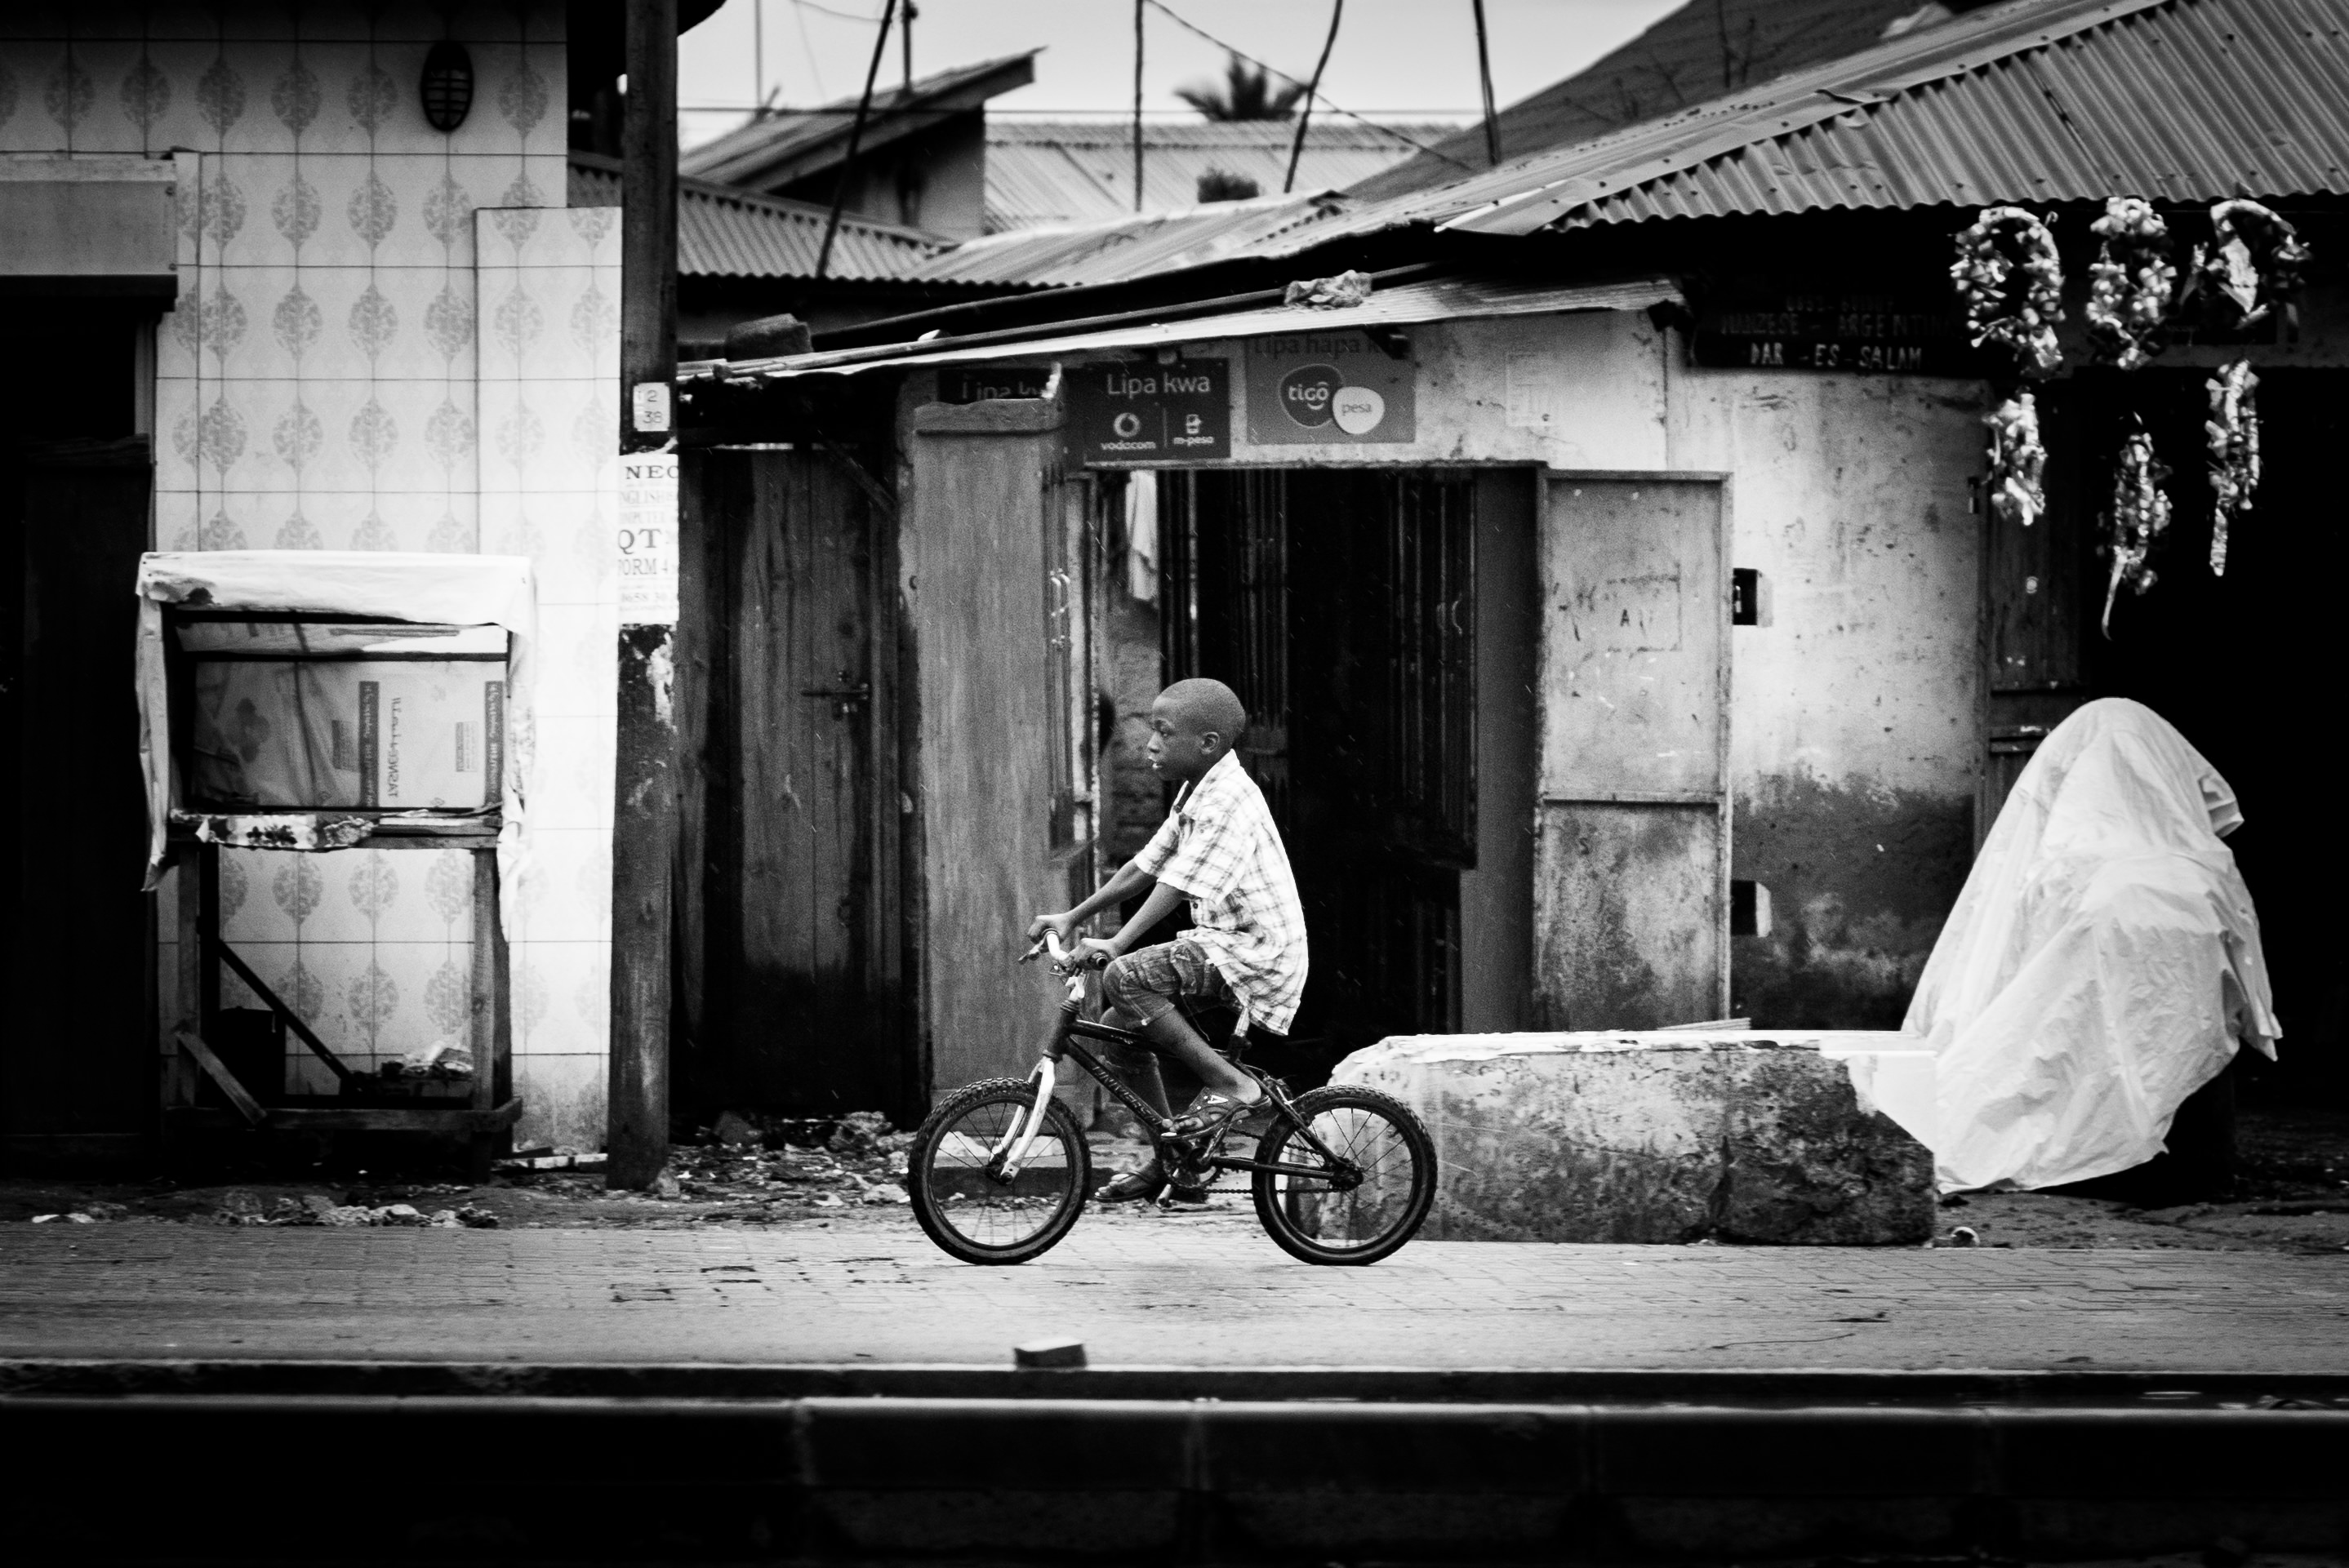 Child riding a bicycle on the streets of Tanzania